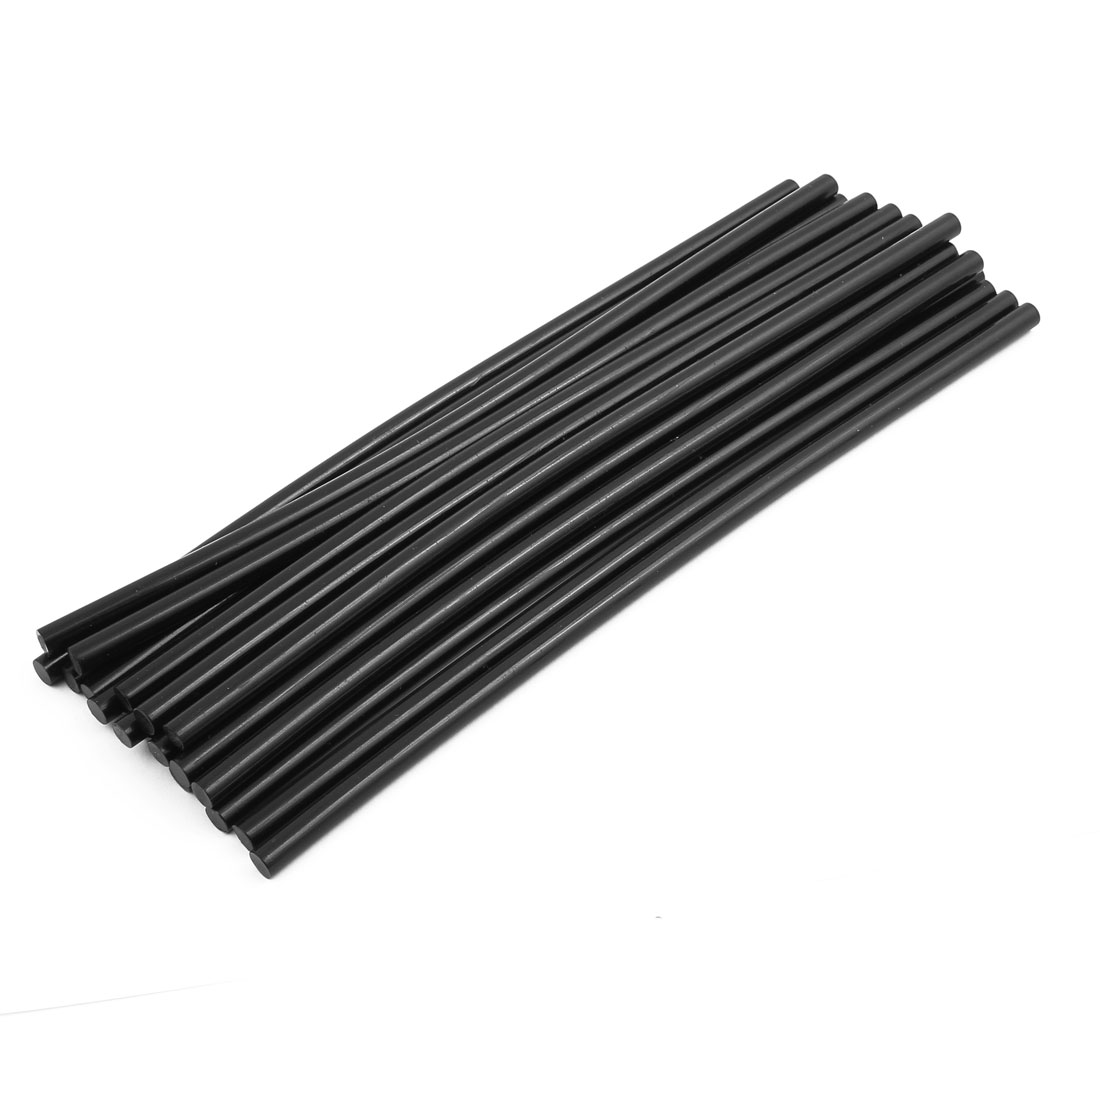 20Pcs 270mm x 7mm Hot Melt Glue Stick Black for Electric Tool Heating Glue Gun